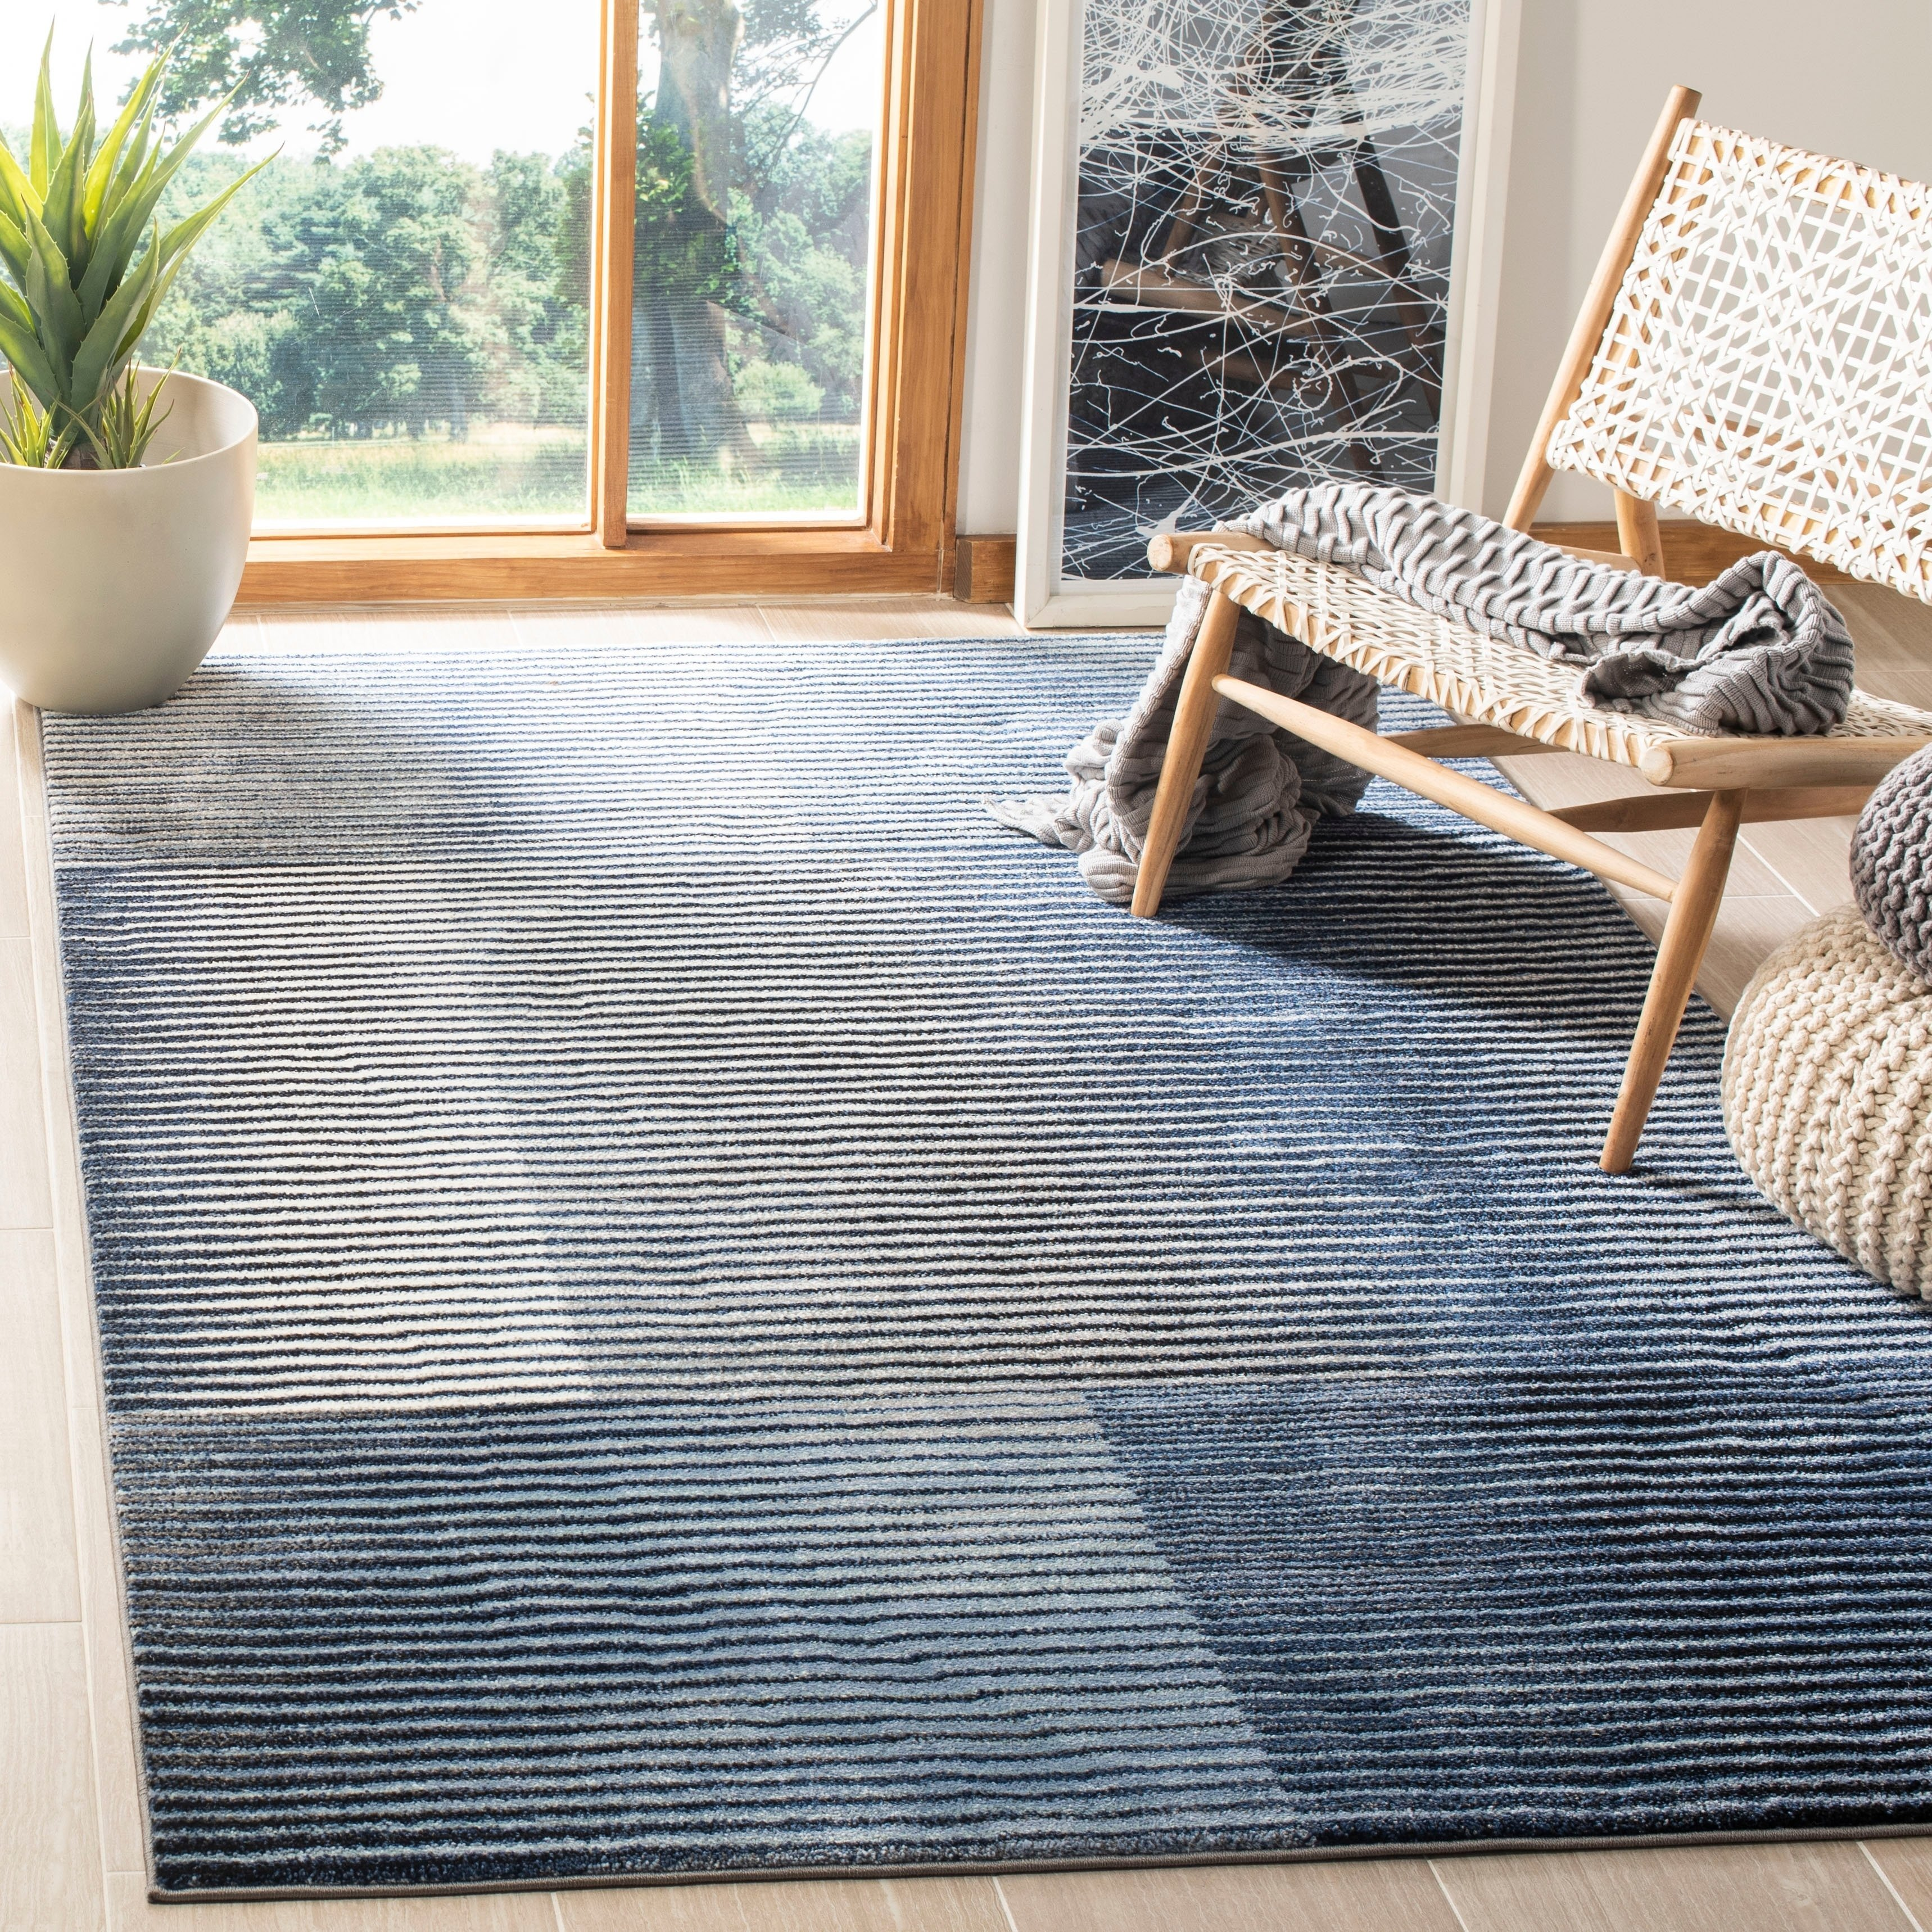 Safavieh Galaxy Transitional Blue Navy Rug 9 X 12 9 X 12 Blue Navy Polypropylene Abstract Products In 2019 Rugs Navy Rug Colorful Rugs